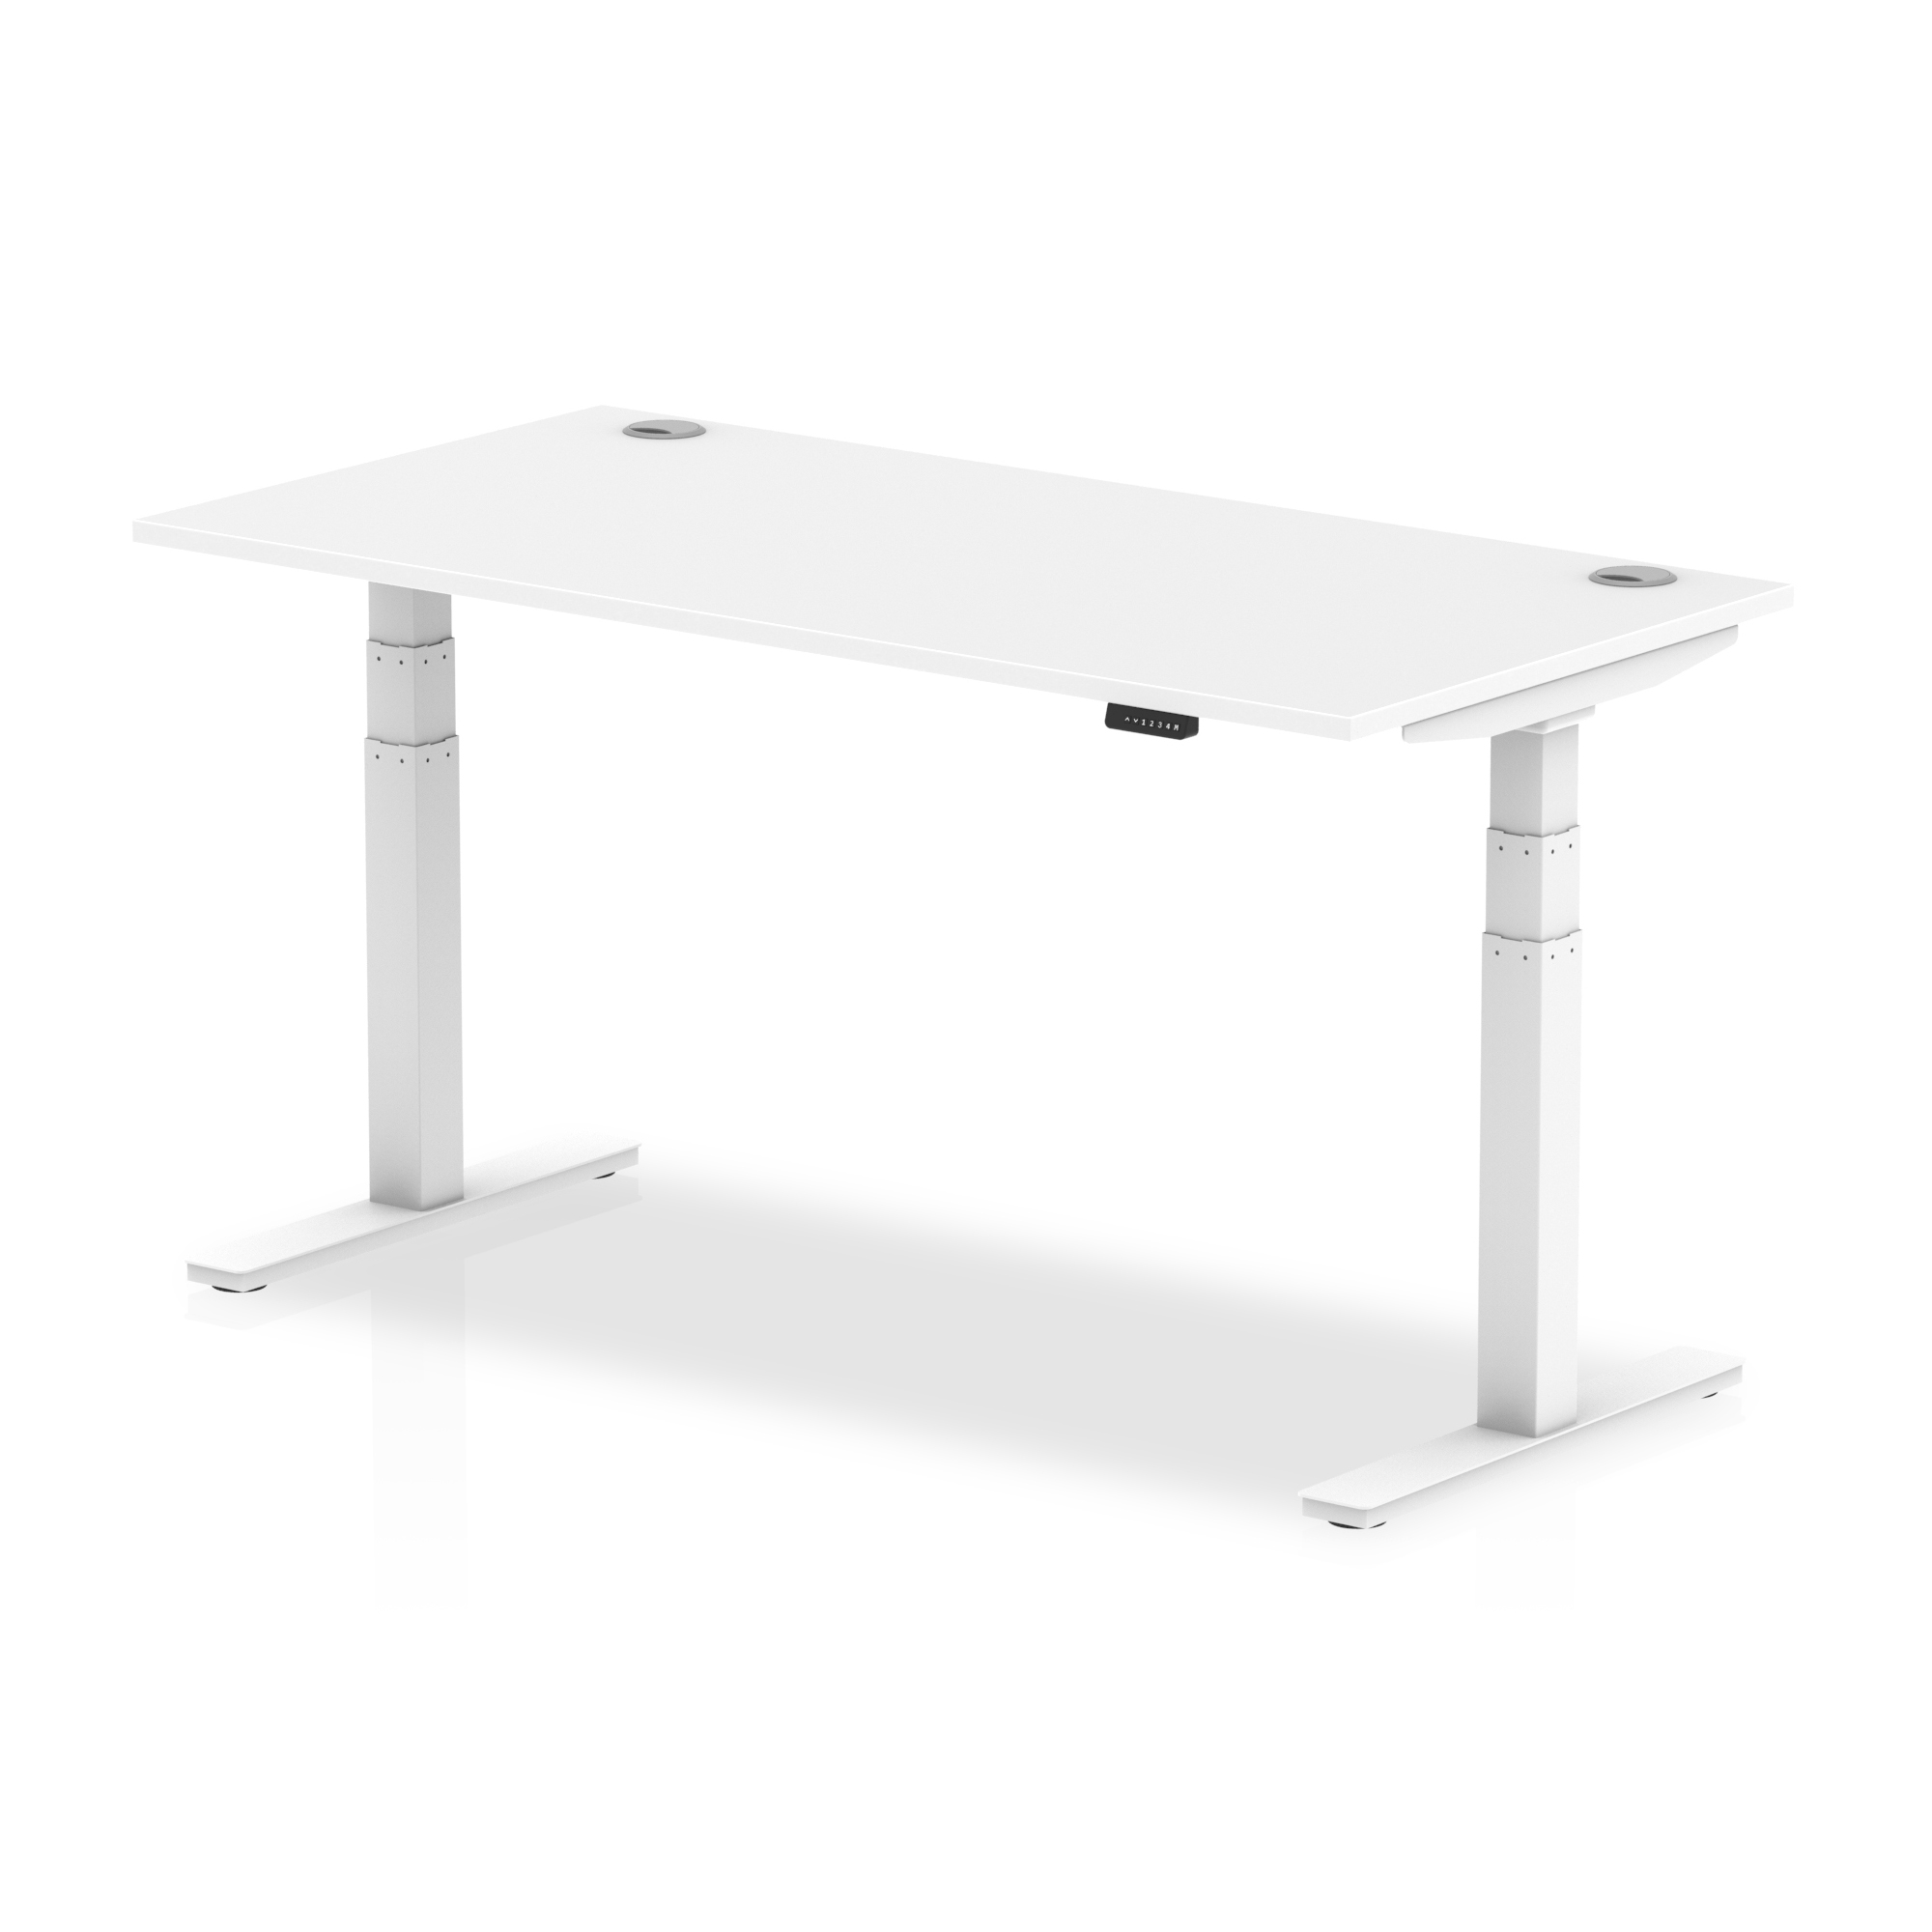 Trexus Sit Stand Desk With Cable Ports White Legs 1600x800mm White Ref HA01111